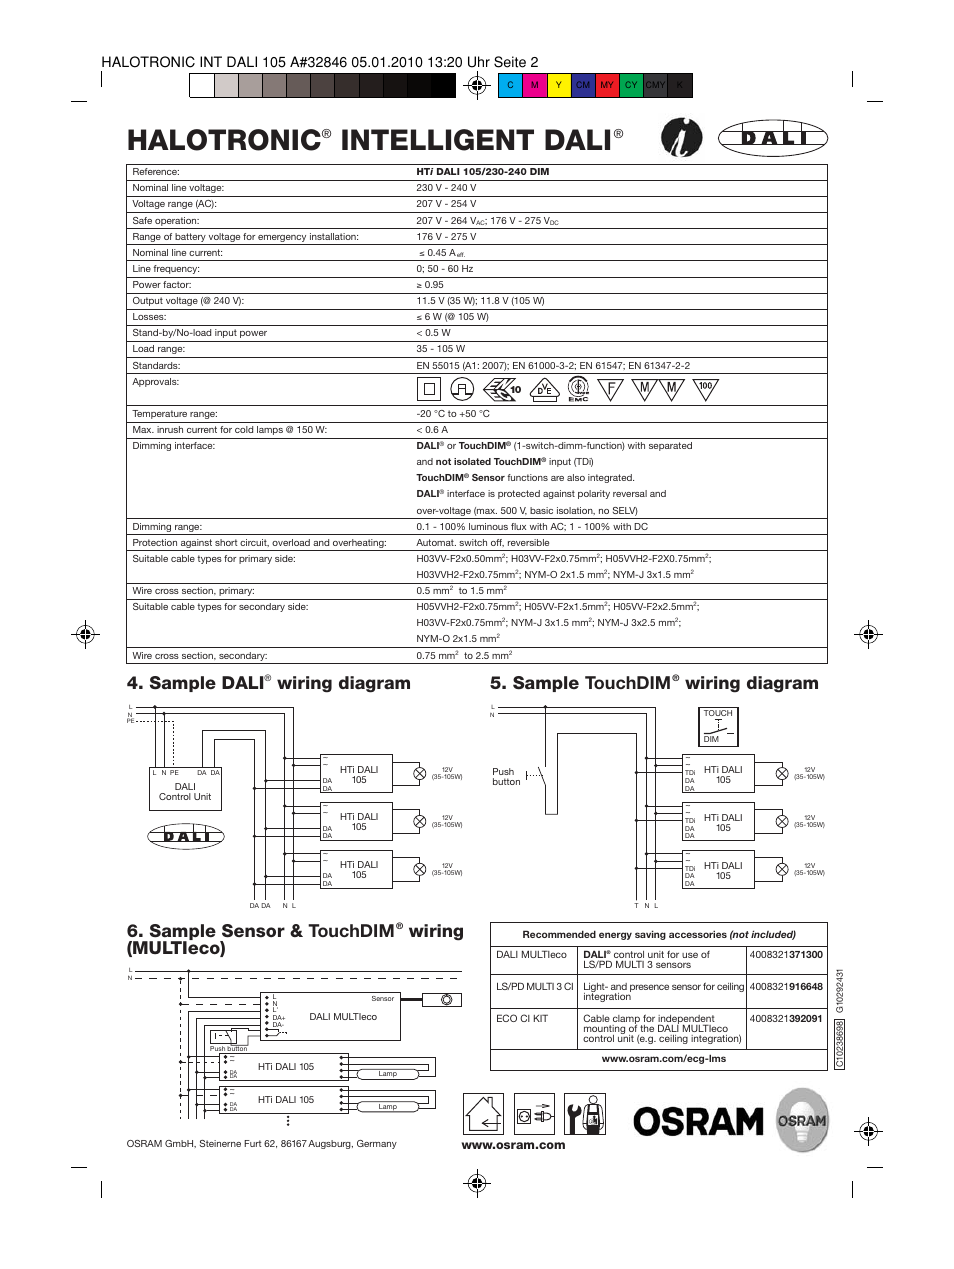 Halotronic, Intelligent dali, Sample touchdim | OSRAM HALOTRONIC Electronic  transformers HTi User Manual | Page 2 / 2